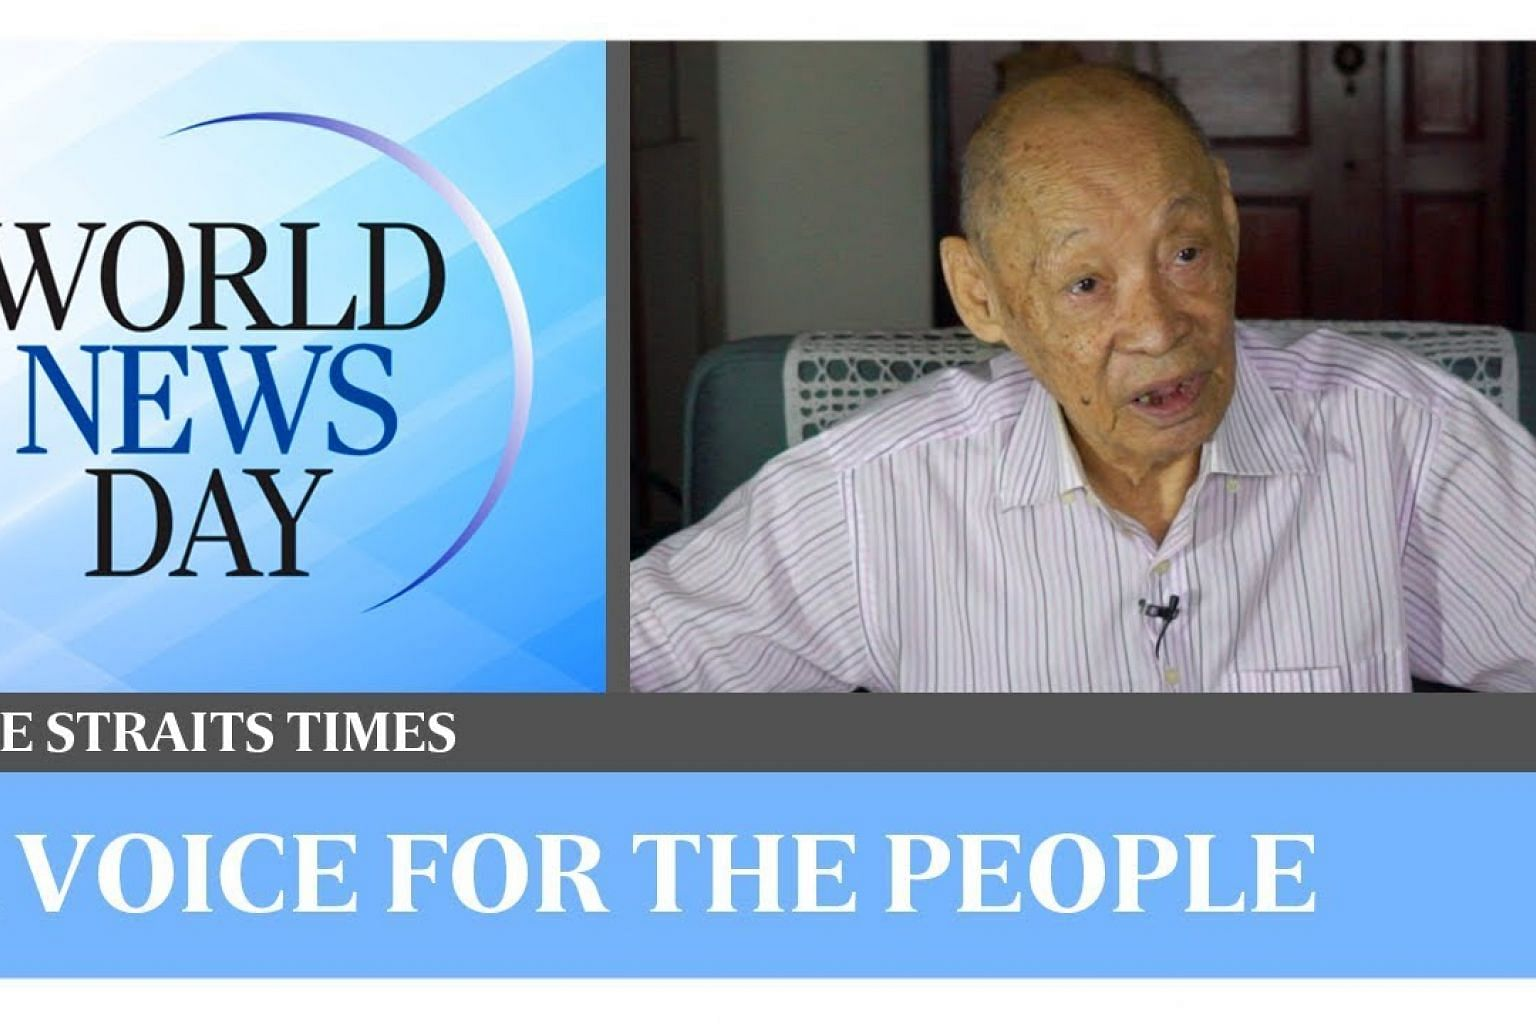 World News Day: A voice for the people - how journalism can help change policy  | The Straits Times